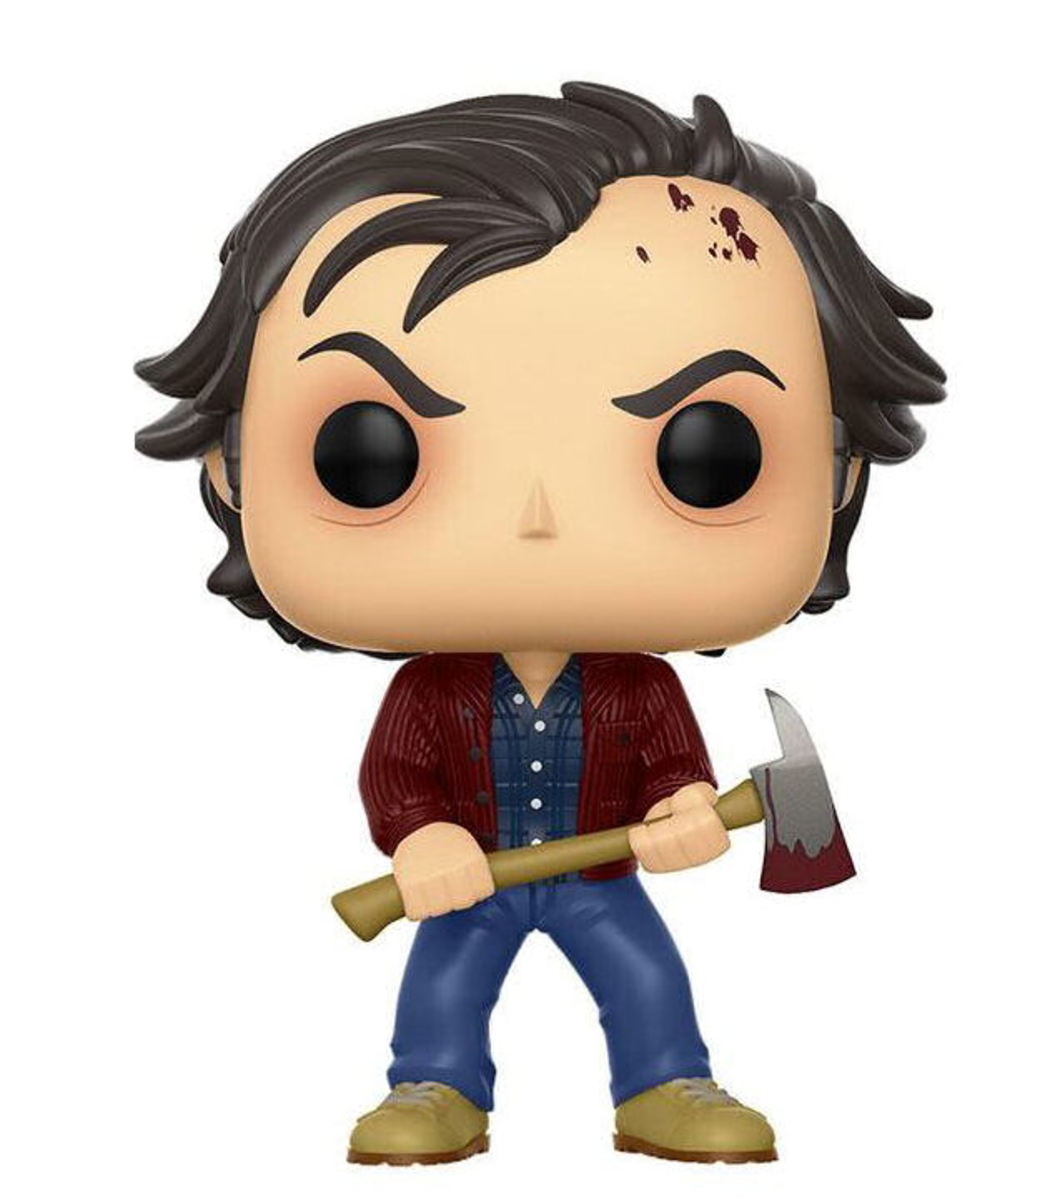 figurka - The Shining - Jack Torrance - POP! - Movies - FK15021